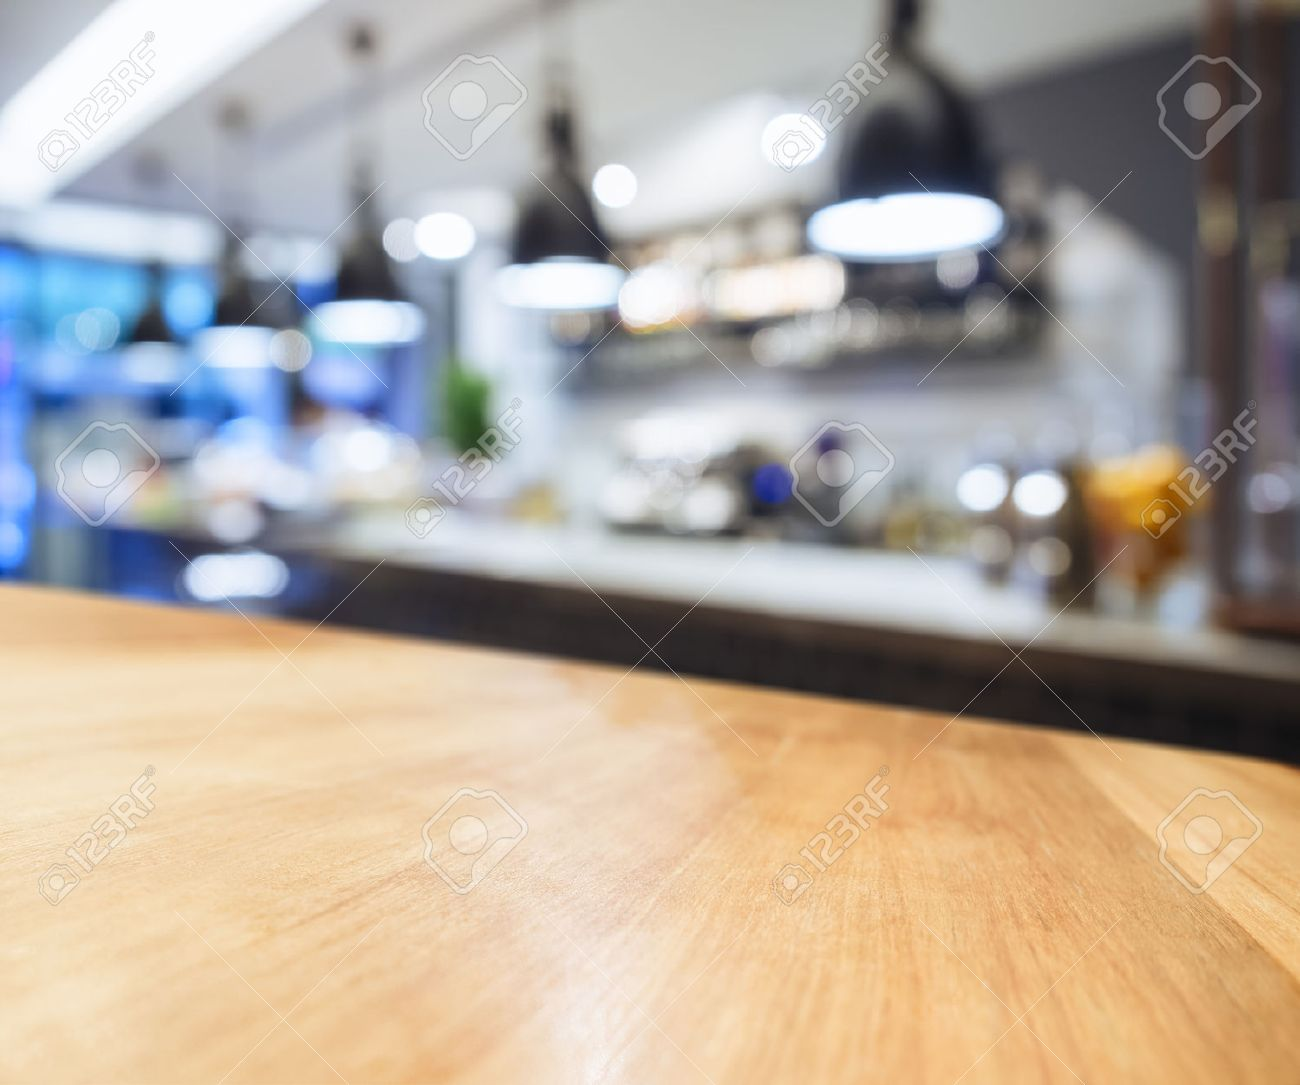 Restaurant Kitchen Background Table Top Counter With Blurred Kitchen Background Stock Photo